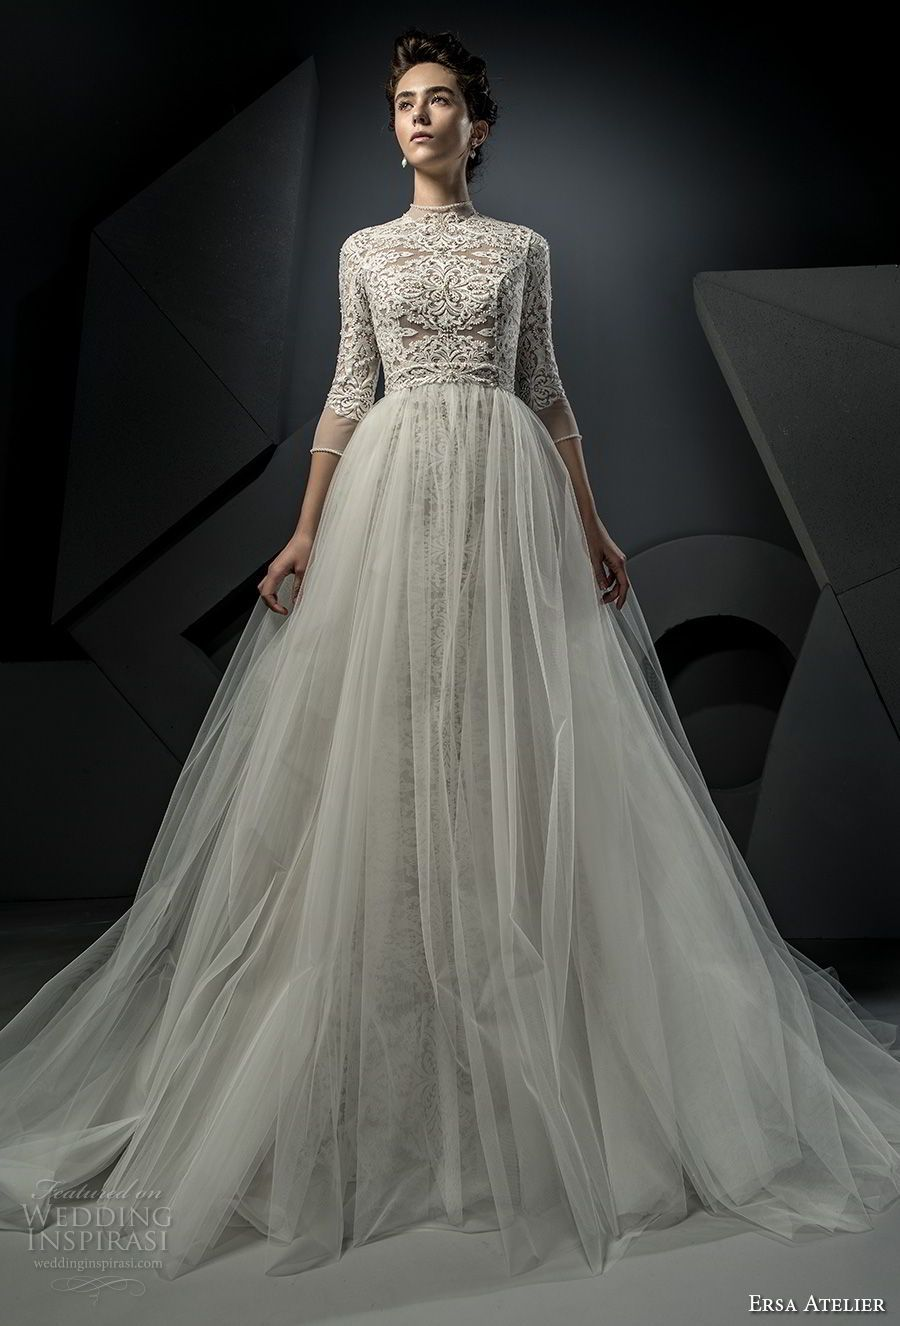 ersa atelier spring 2018 bridal thiree quarters sleeves high neck heavily  embellished bodice tulle skirt elegant modest a line wedding dress covered  lace ... 1163737b2716